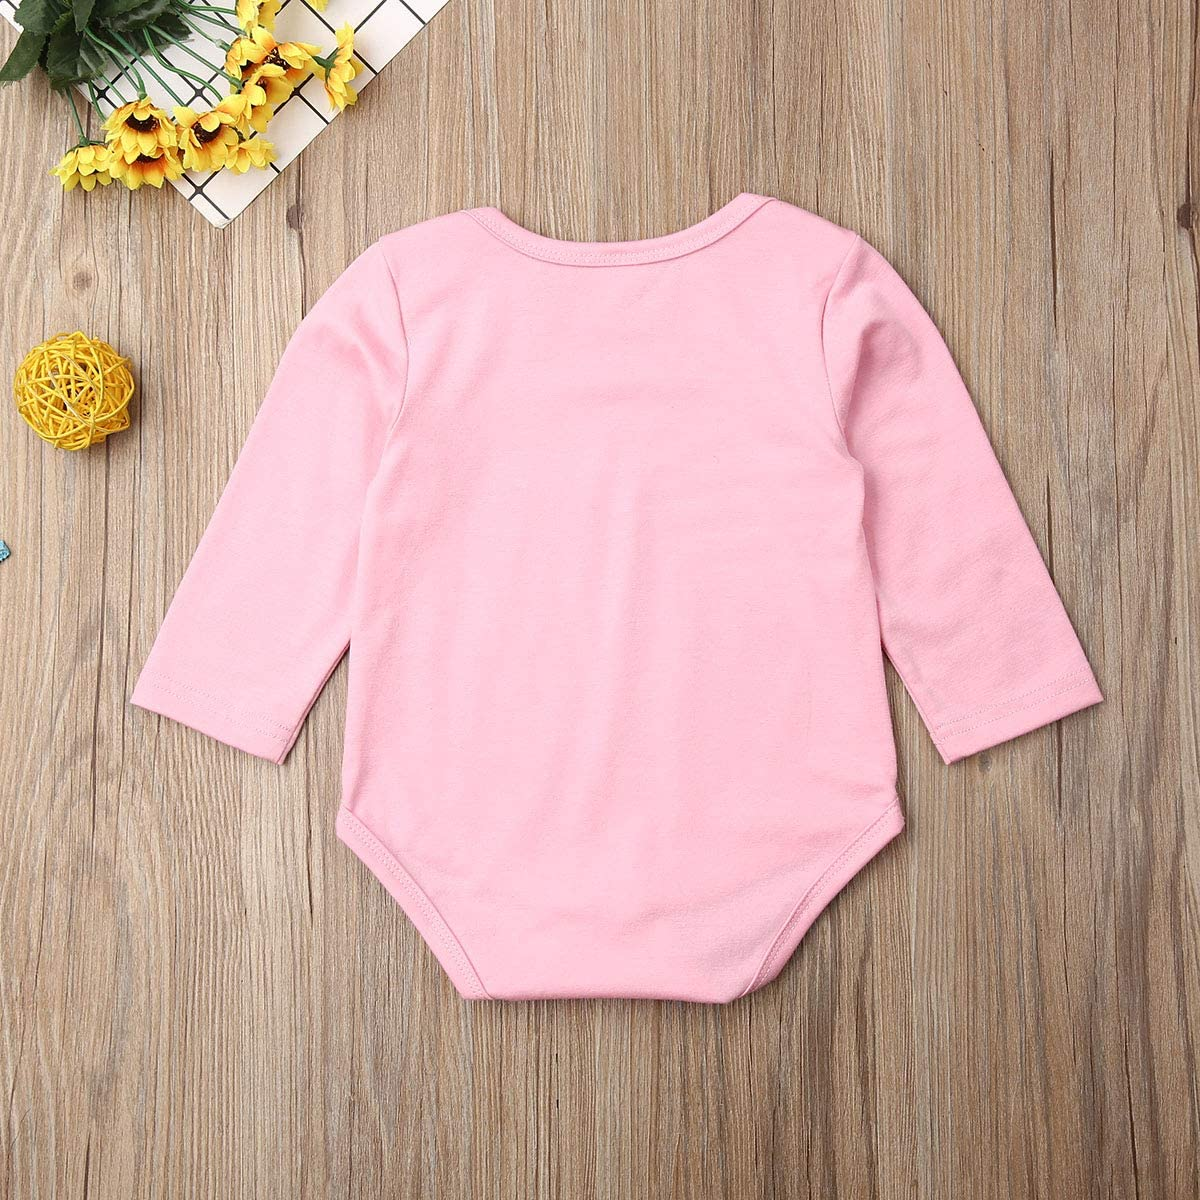 LXXIASHI Taddy Newborn Infant Baby Girl Bodysuit Pink Baby Girl Clothes Pink Shower Gift Romper Cotton Outfit